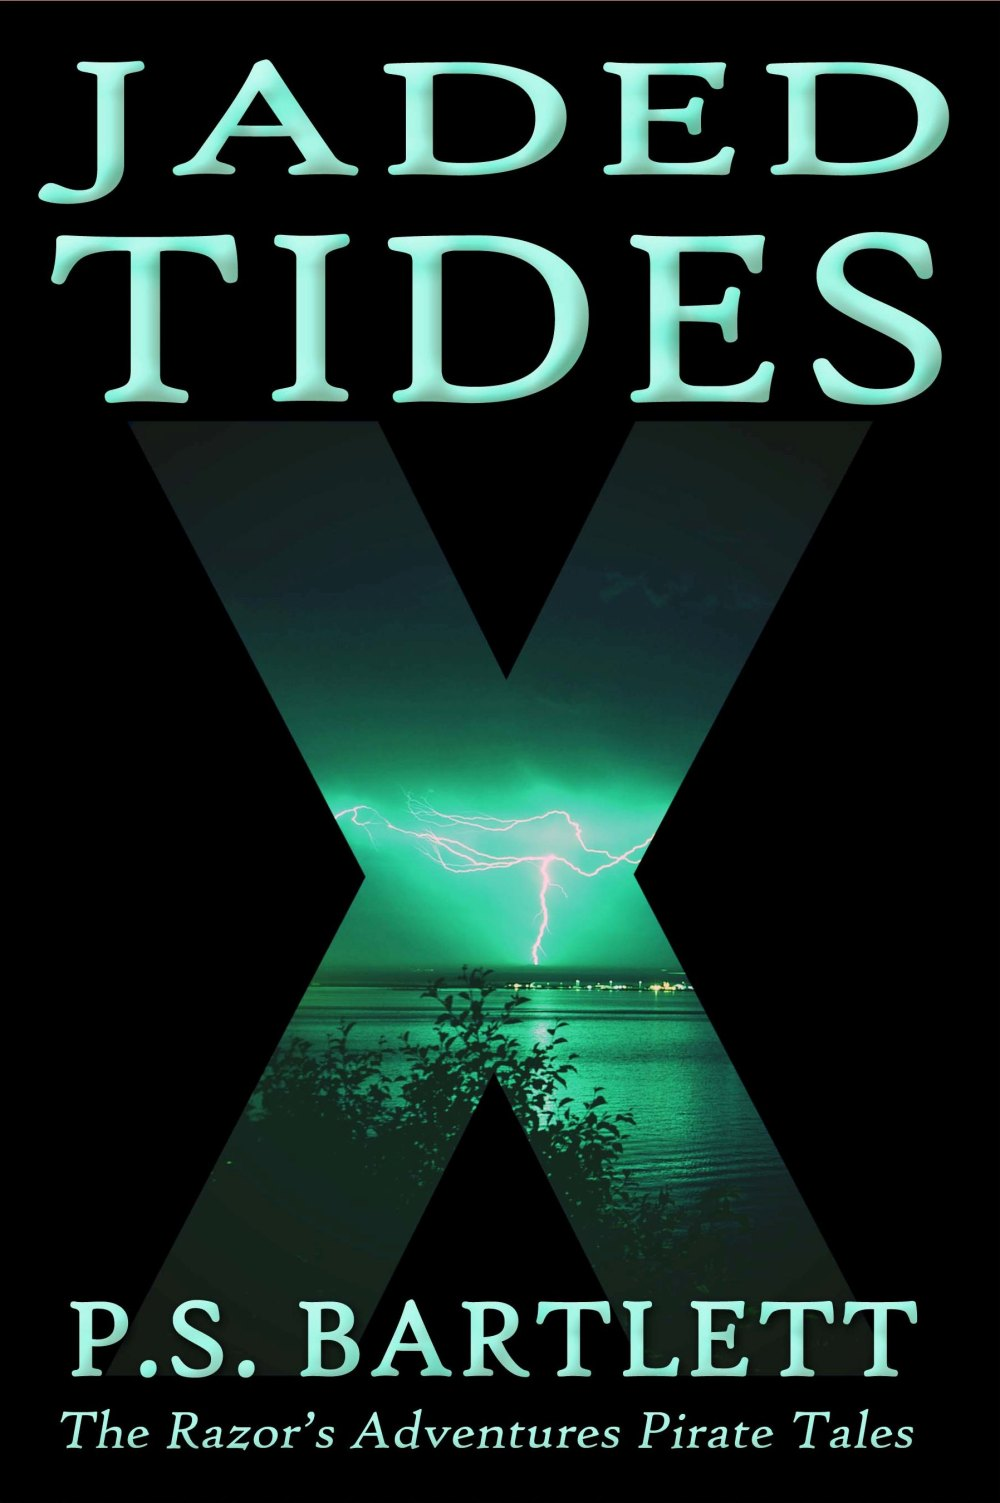 Jaded Tides by P.S. Bartlett